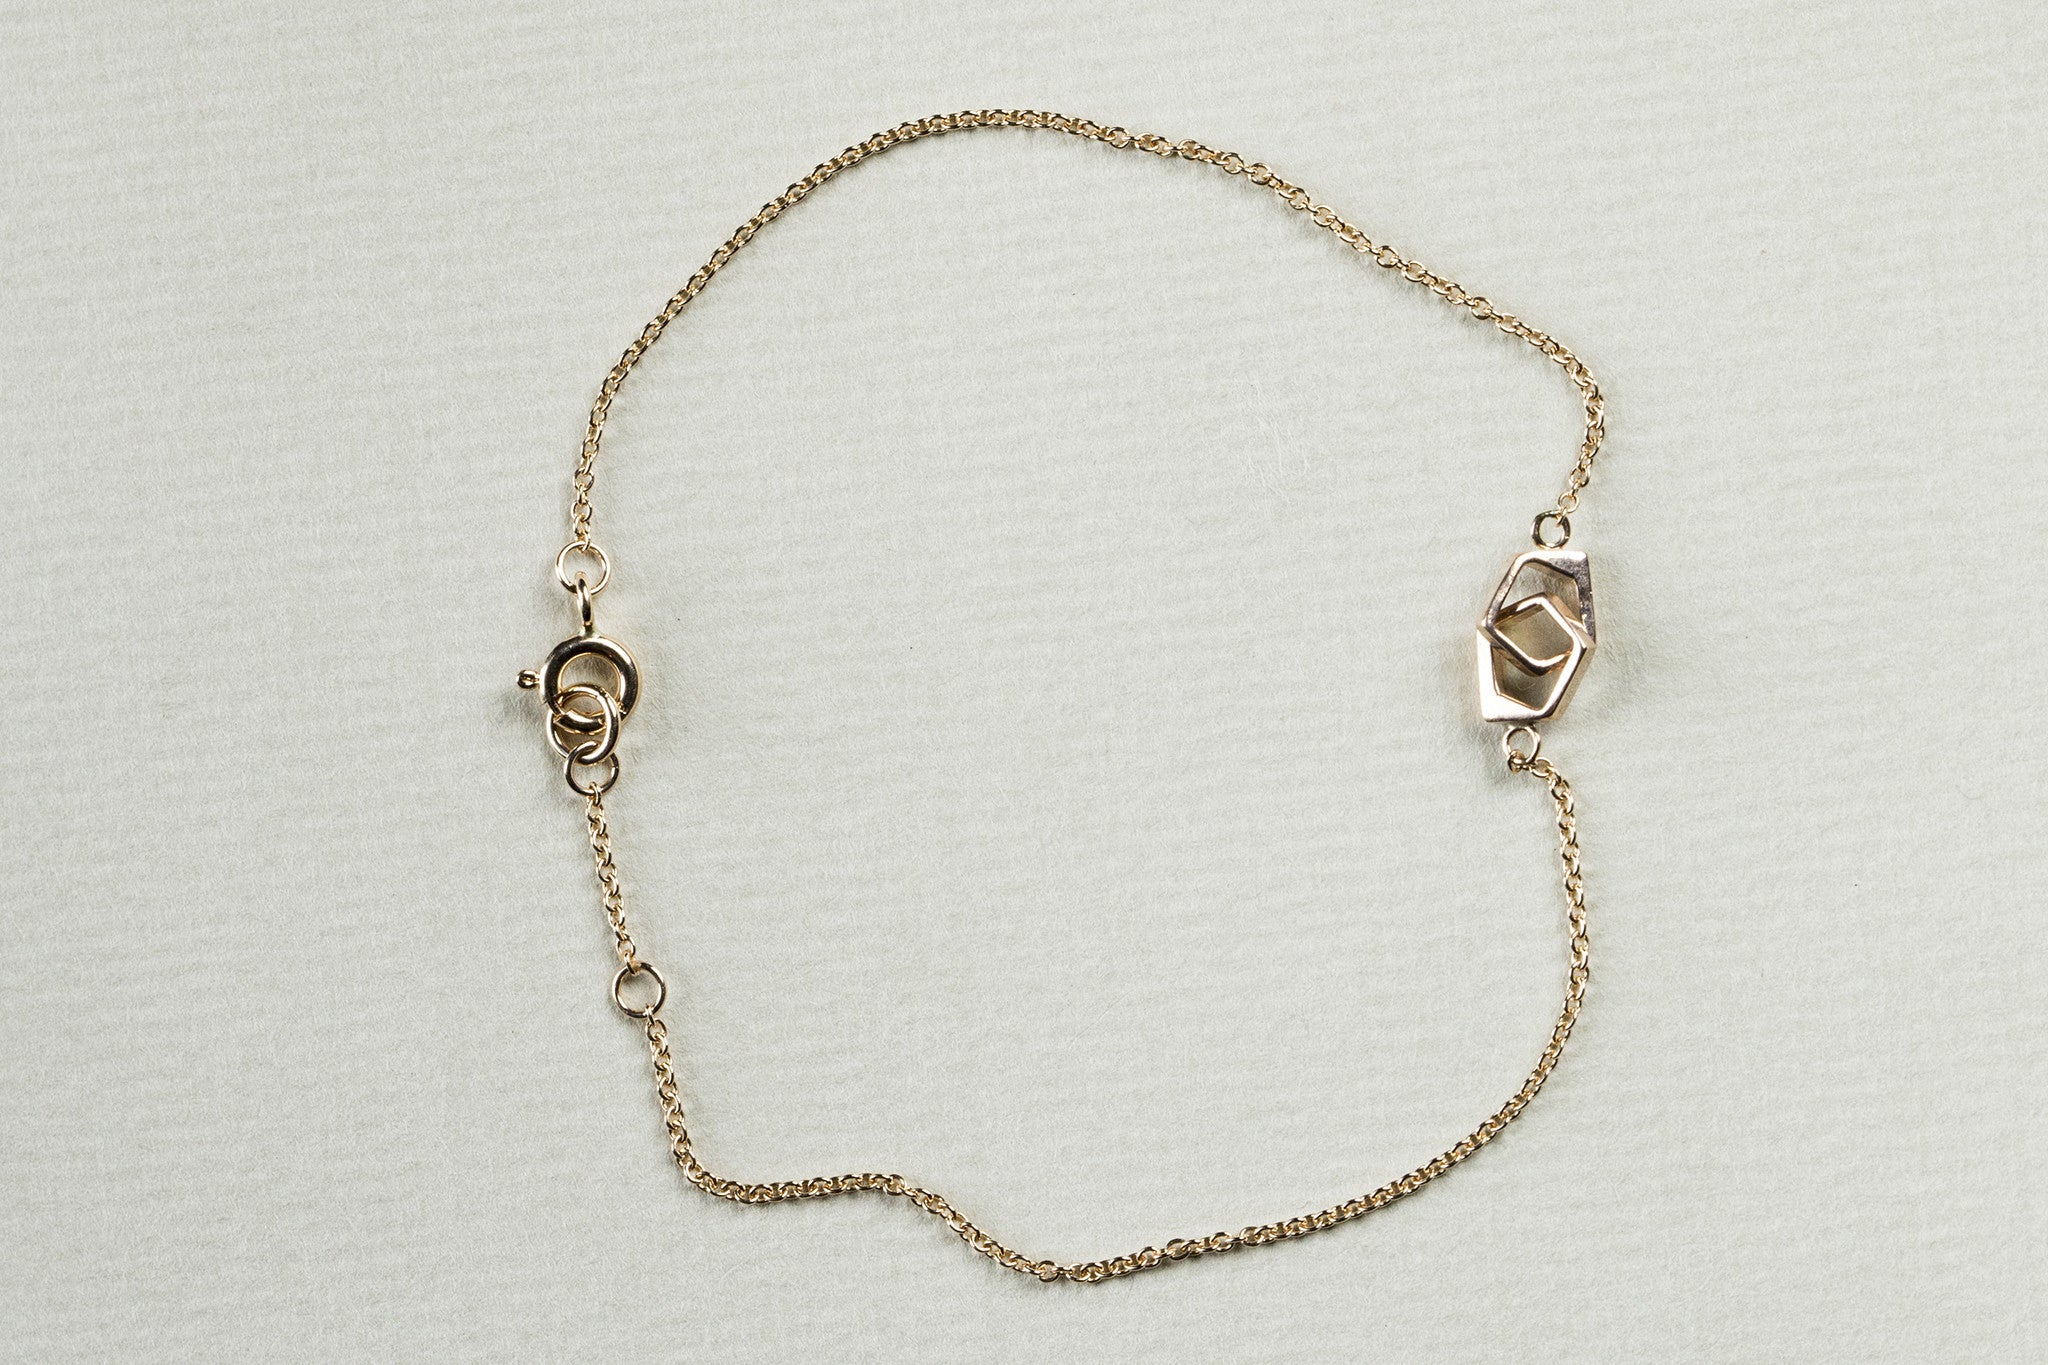 Entwined Wonky Links Bracelet in Rose Gold